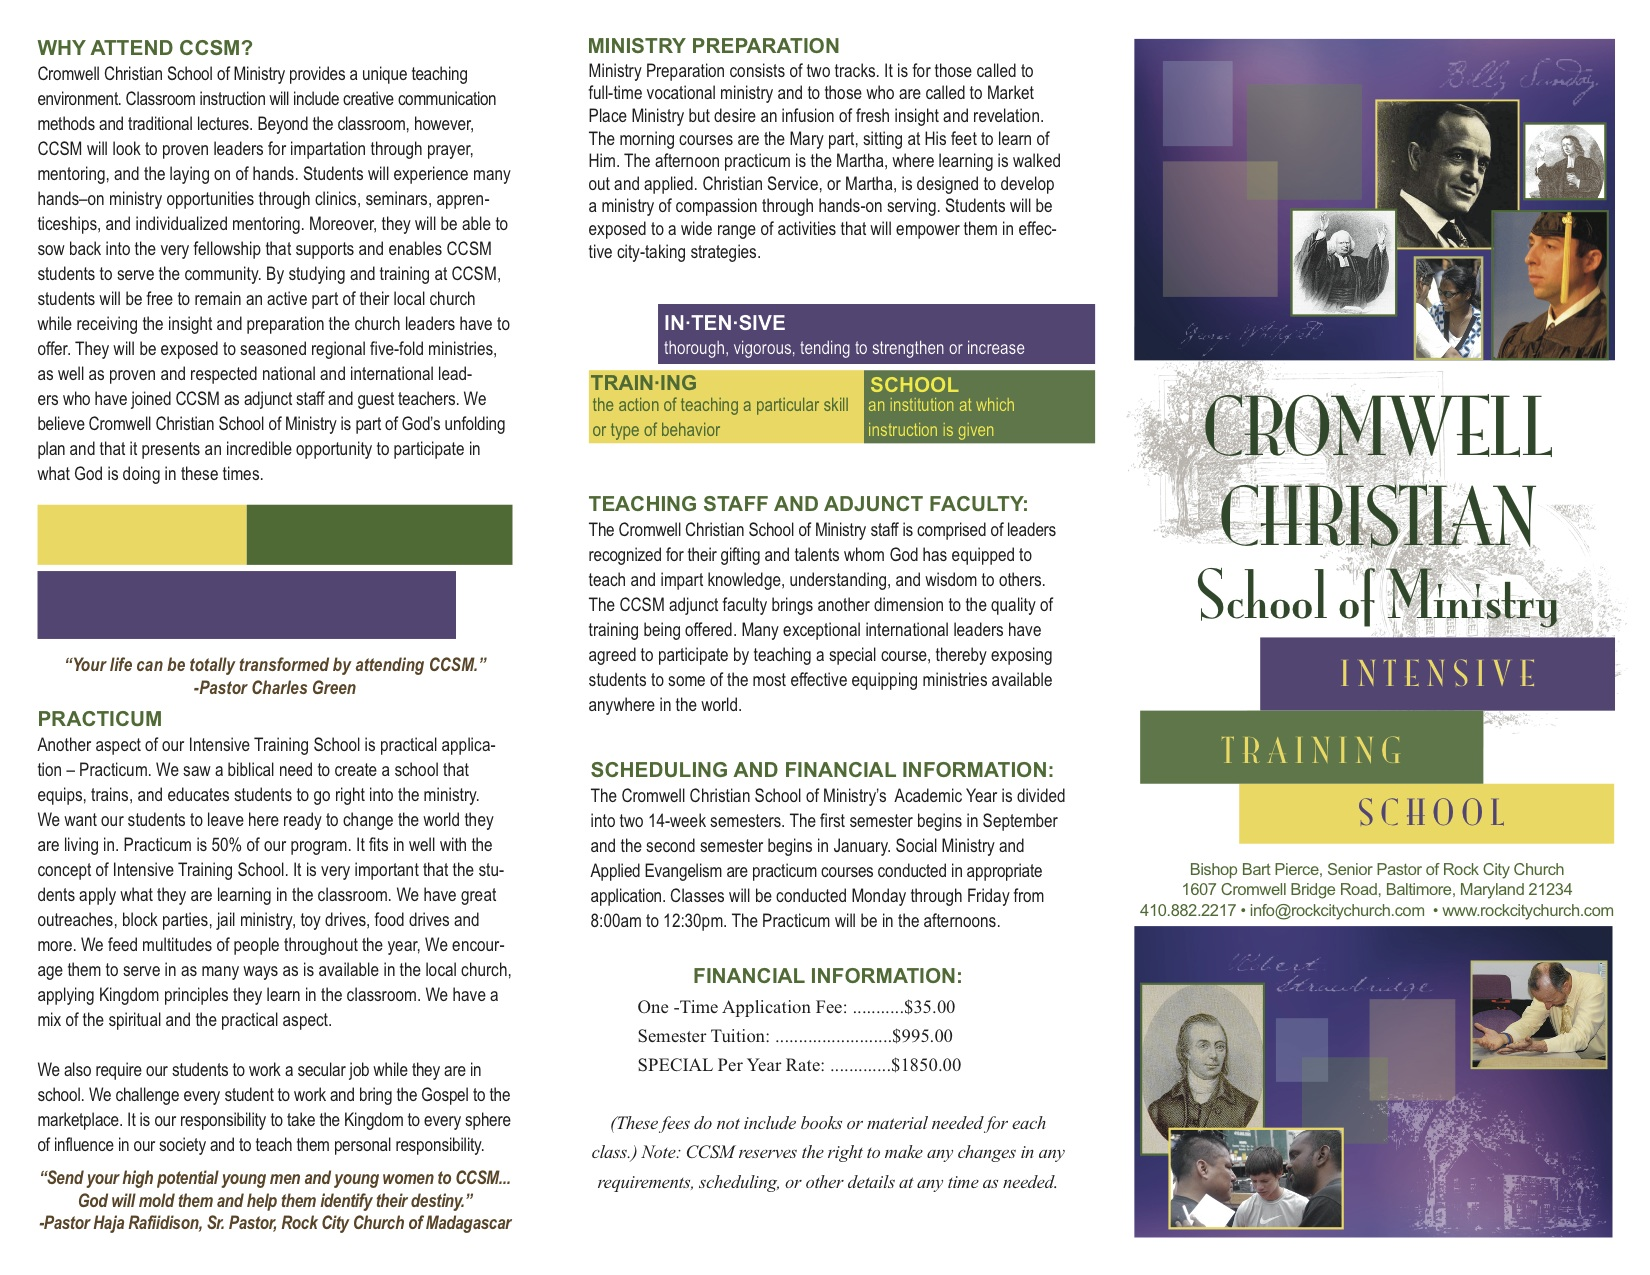 Cromwell Christian School of Ministry CCSM Intensive Training School ITS in Baltimore, Maryland Brochure